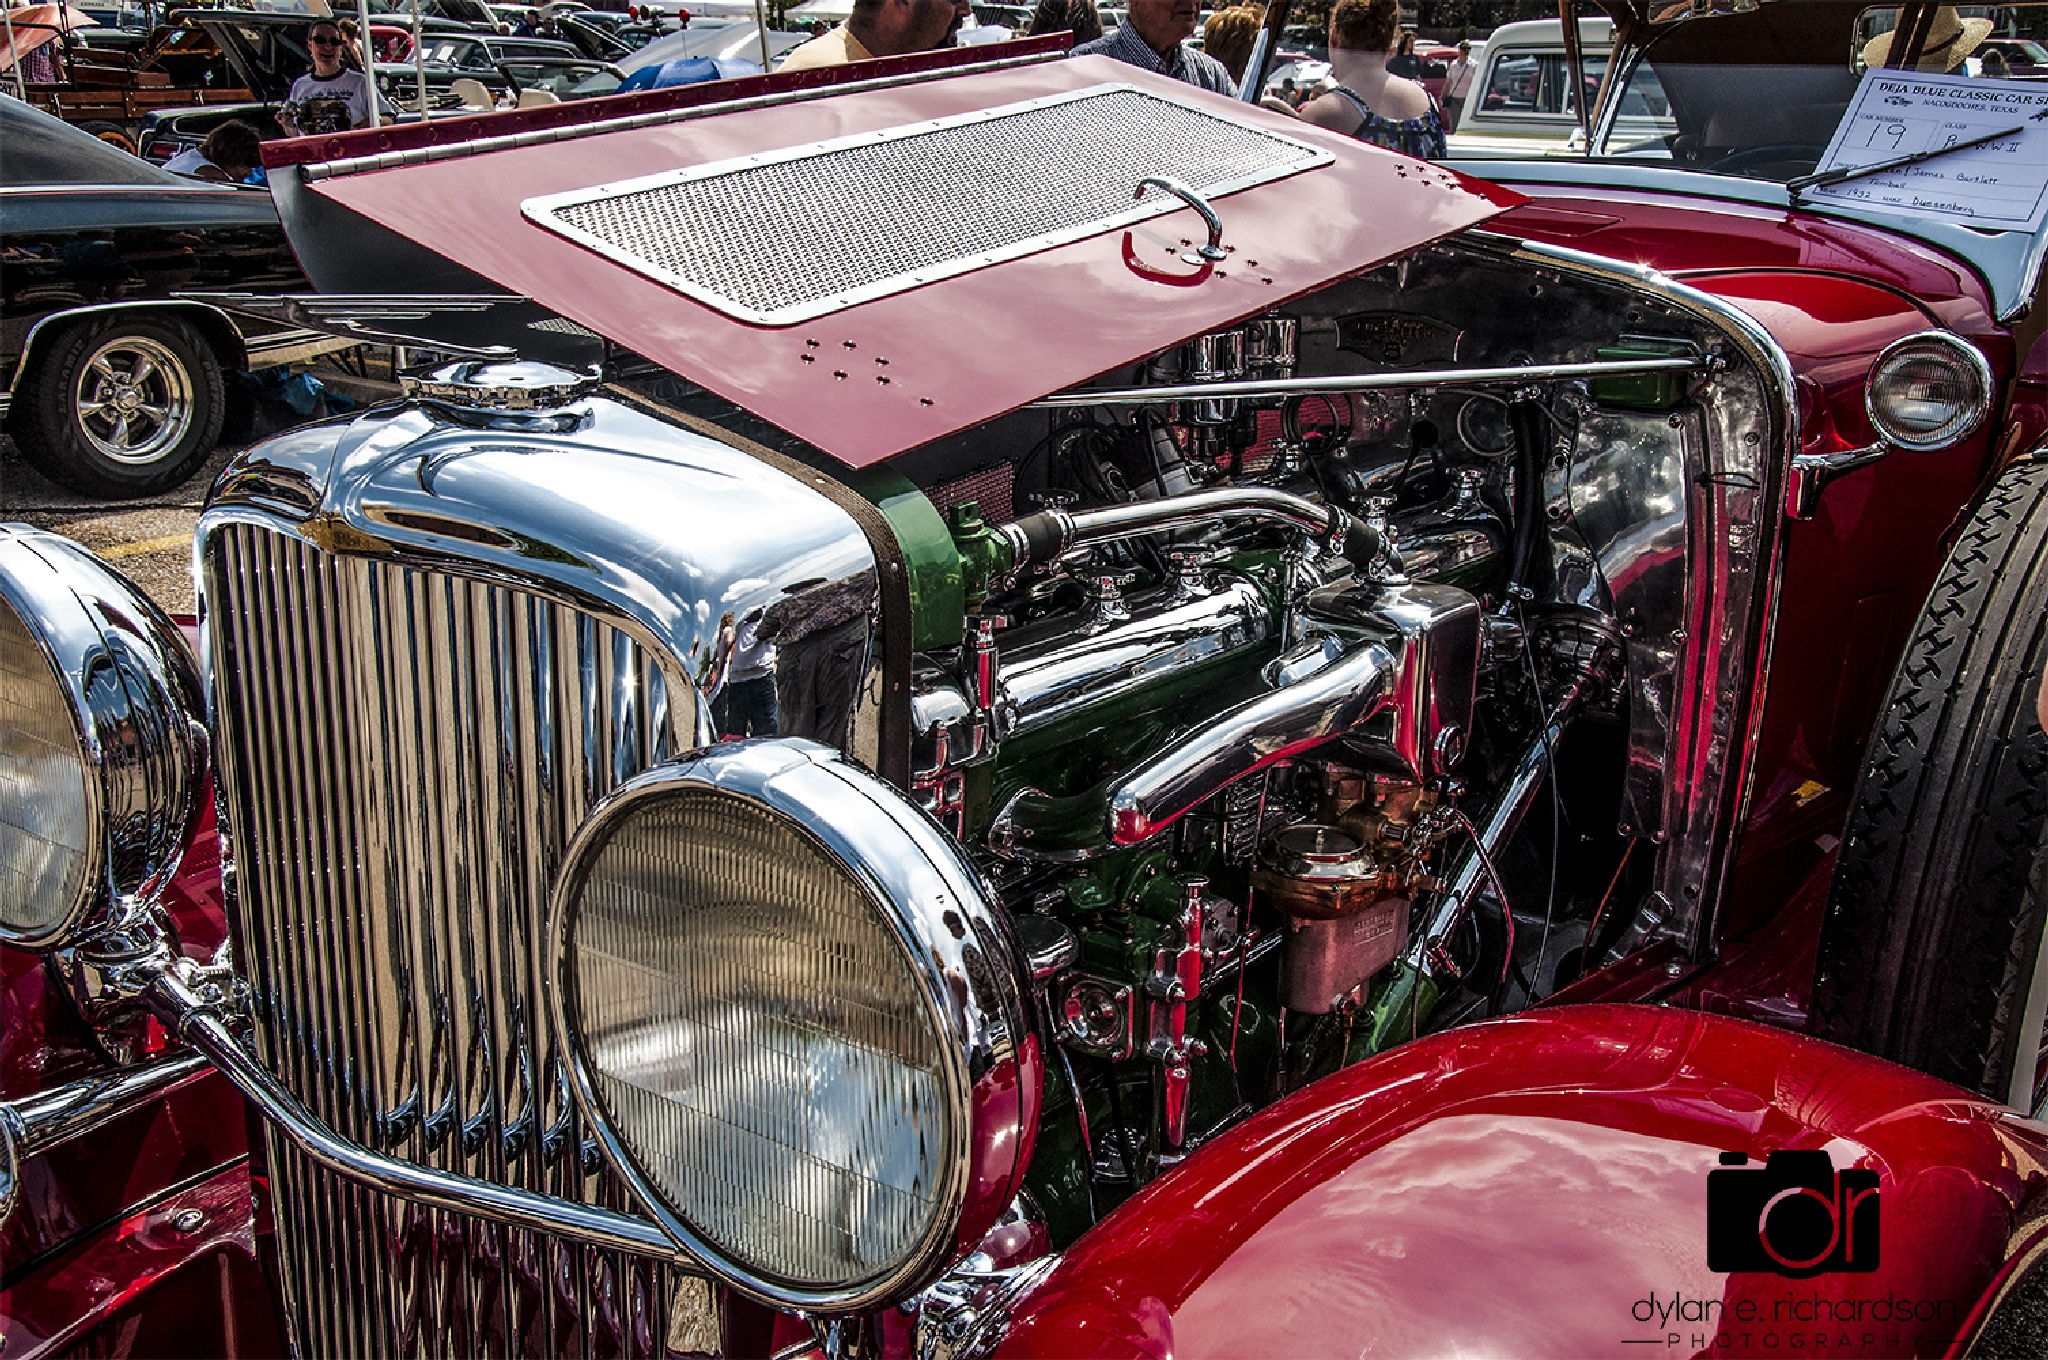 Classic Auto by dronline841